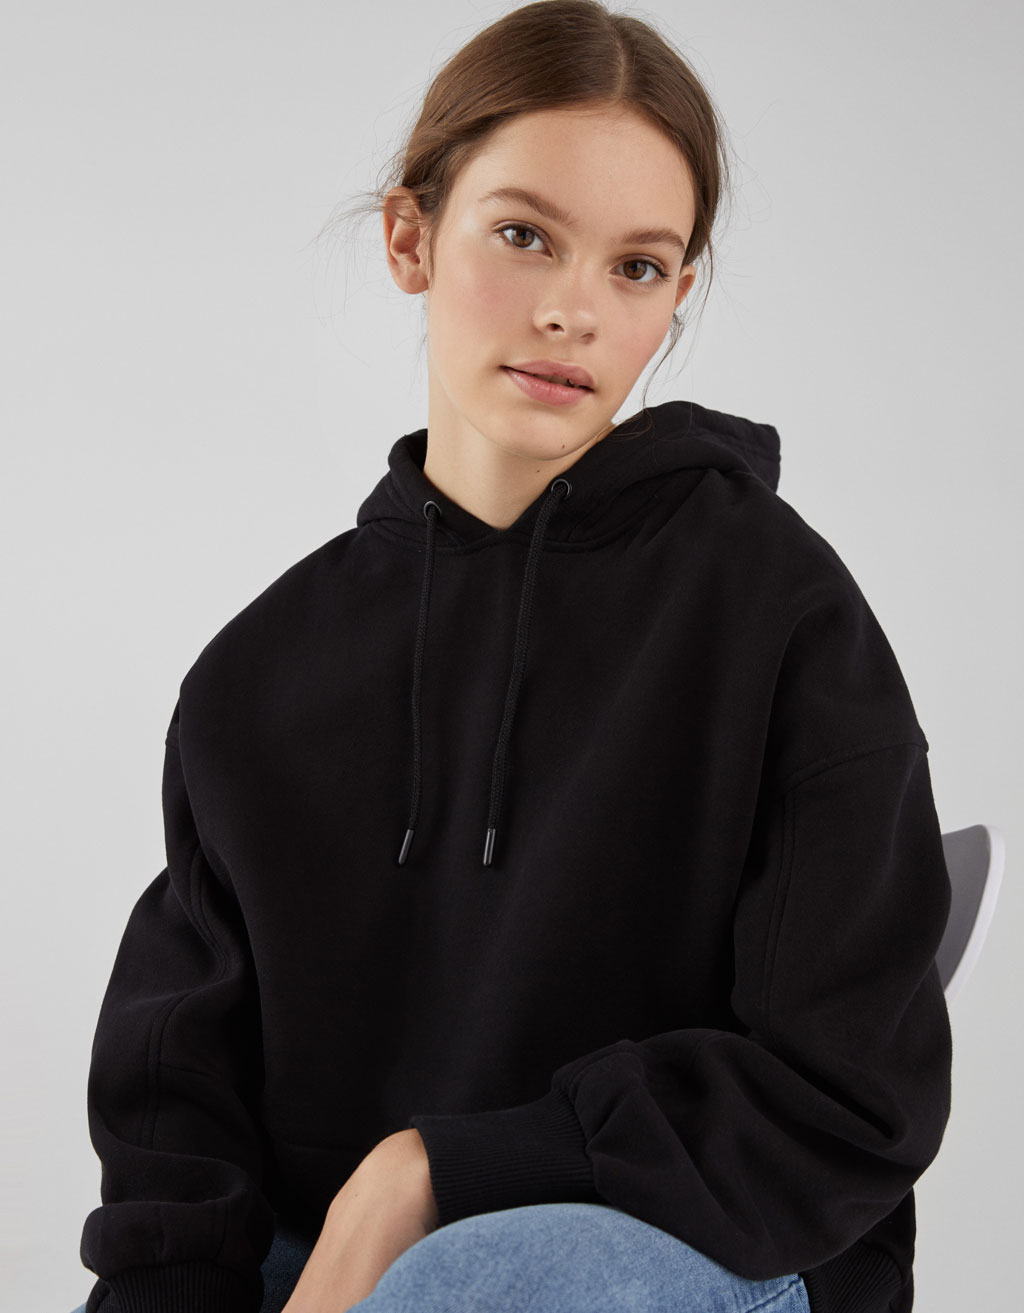 Join Life oversized hooded sweatshirt